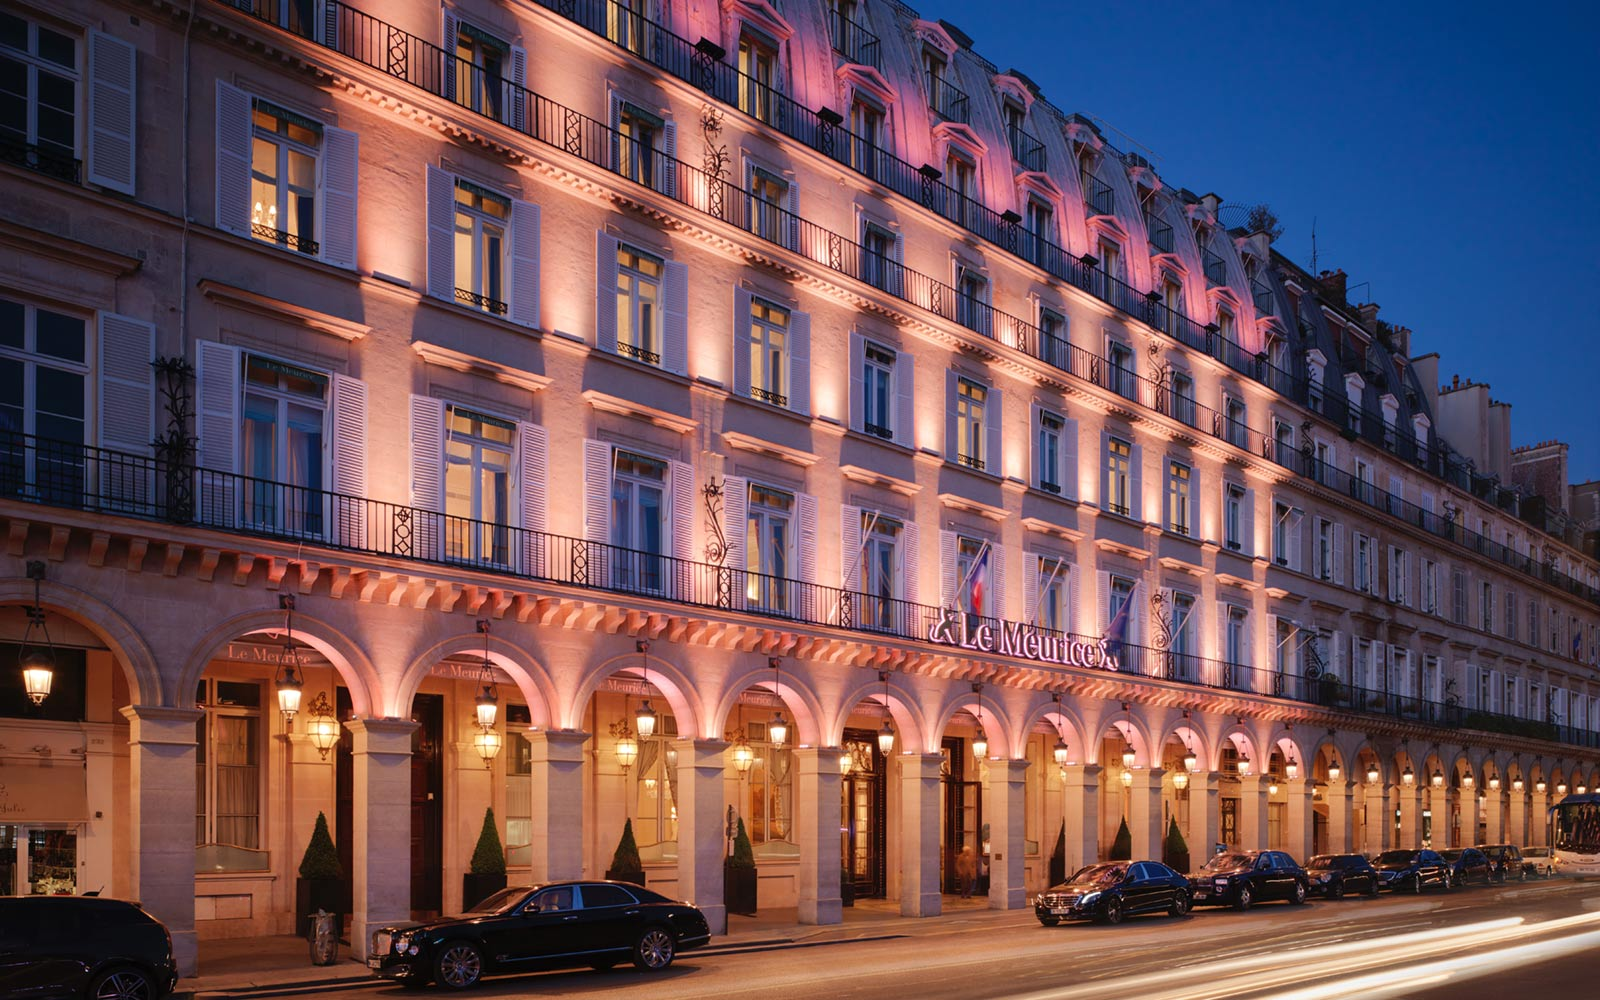 3. Le Meurice, Paris